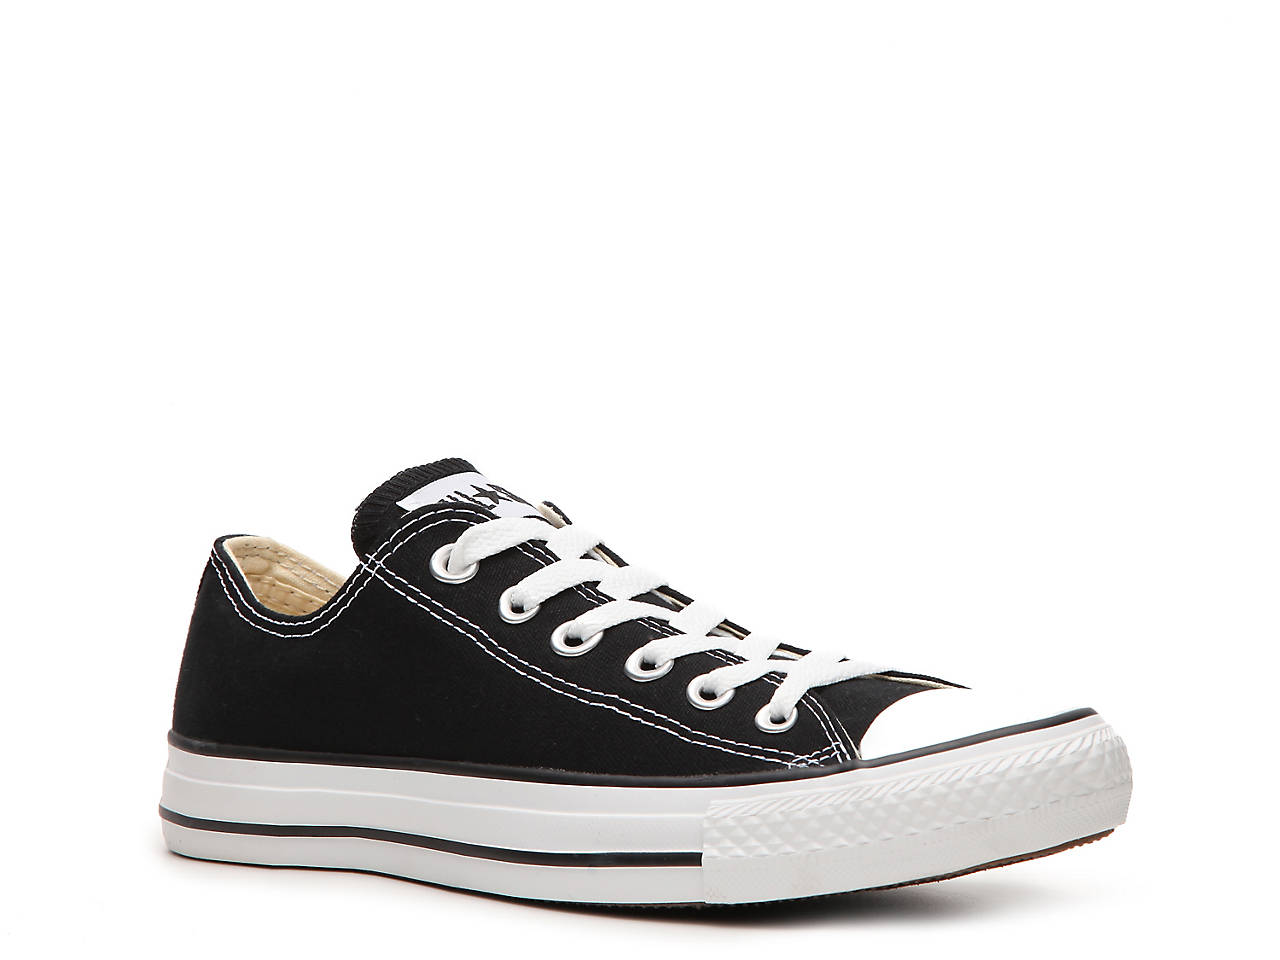 92c884990 Converse Chuck Taylor All Star Sneaker - Women s Women s Shoes